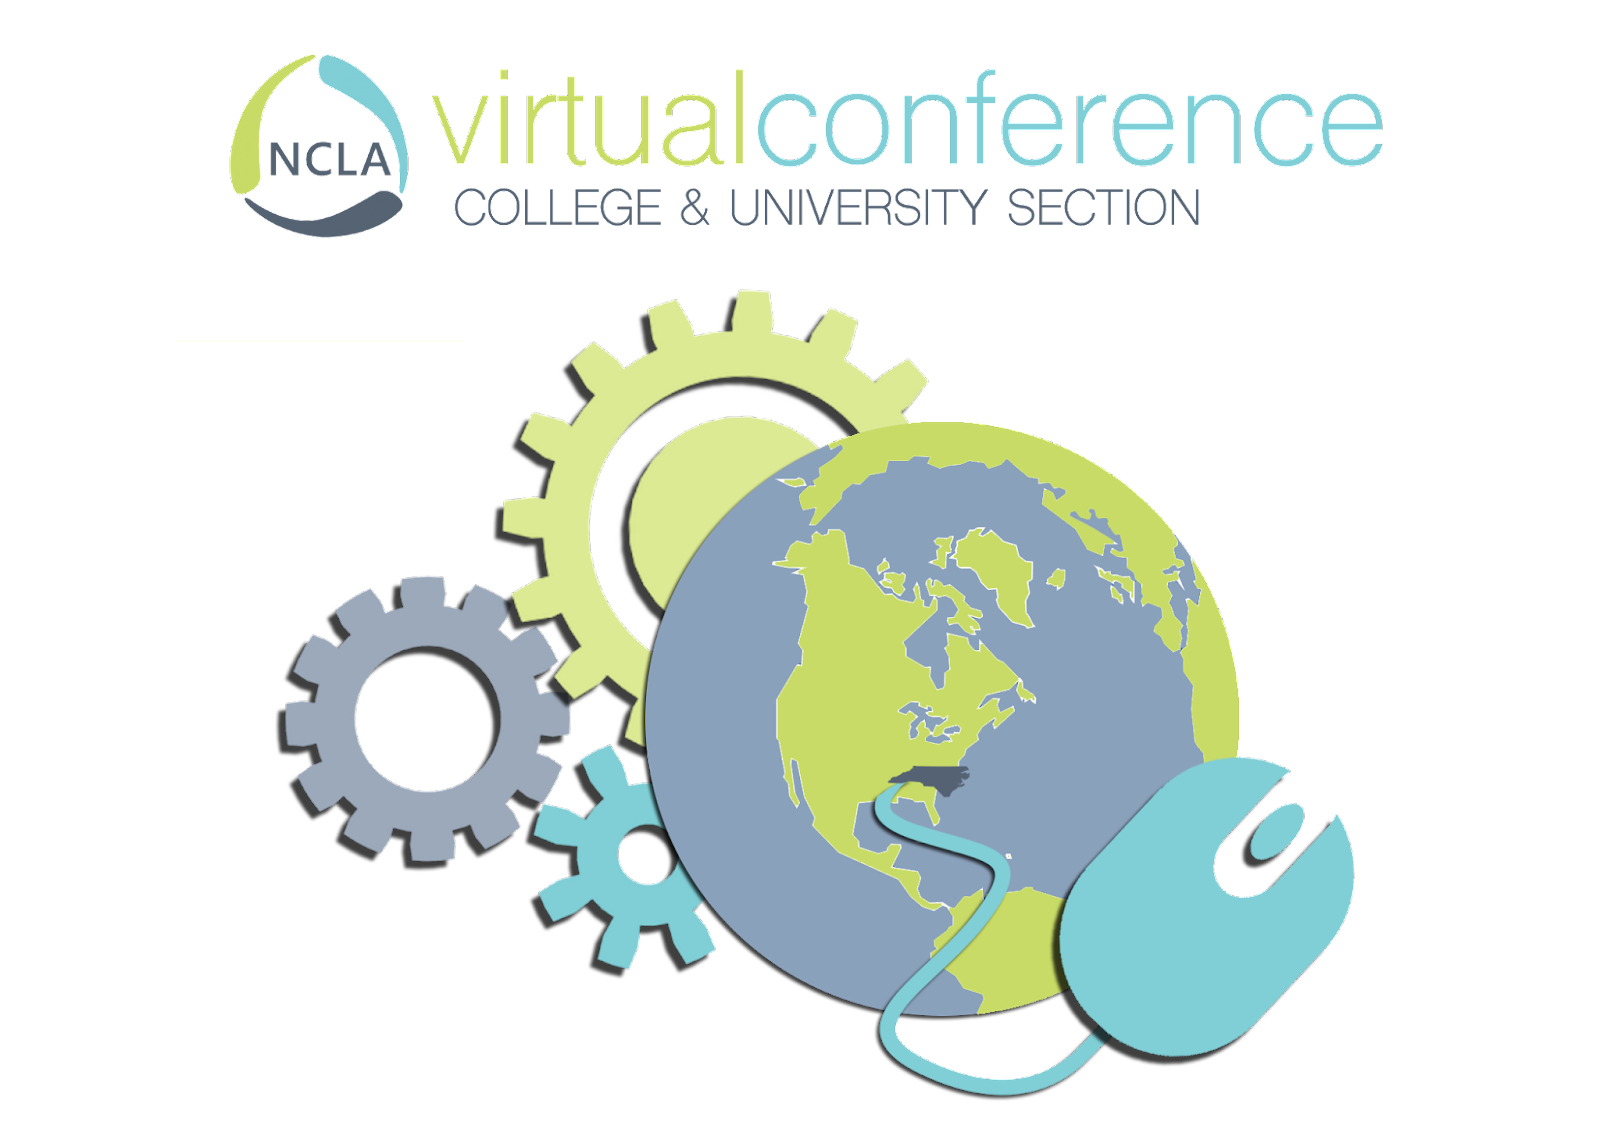 NCLA_CUSVirtualConference.png